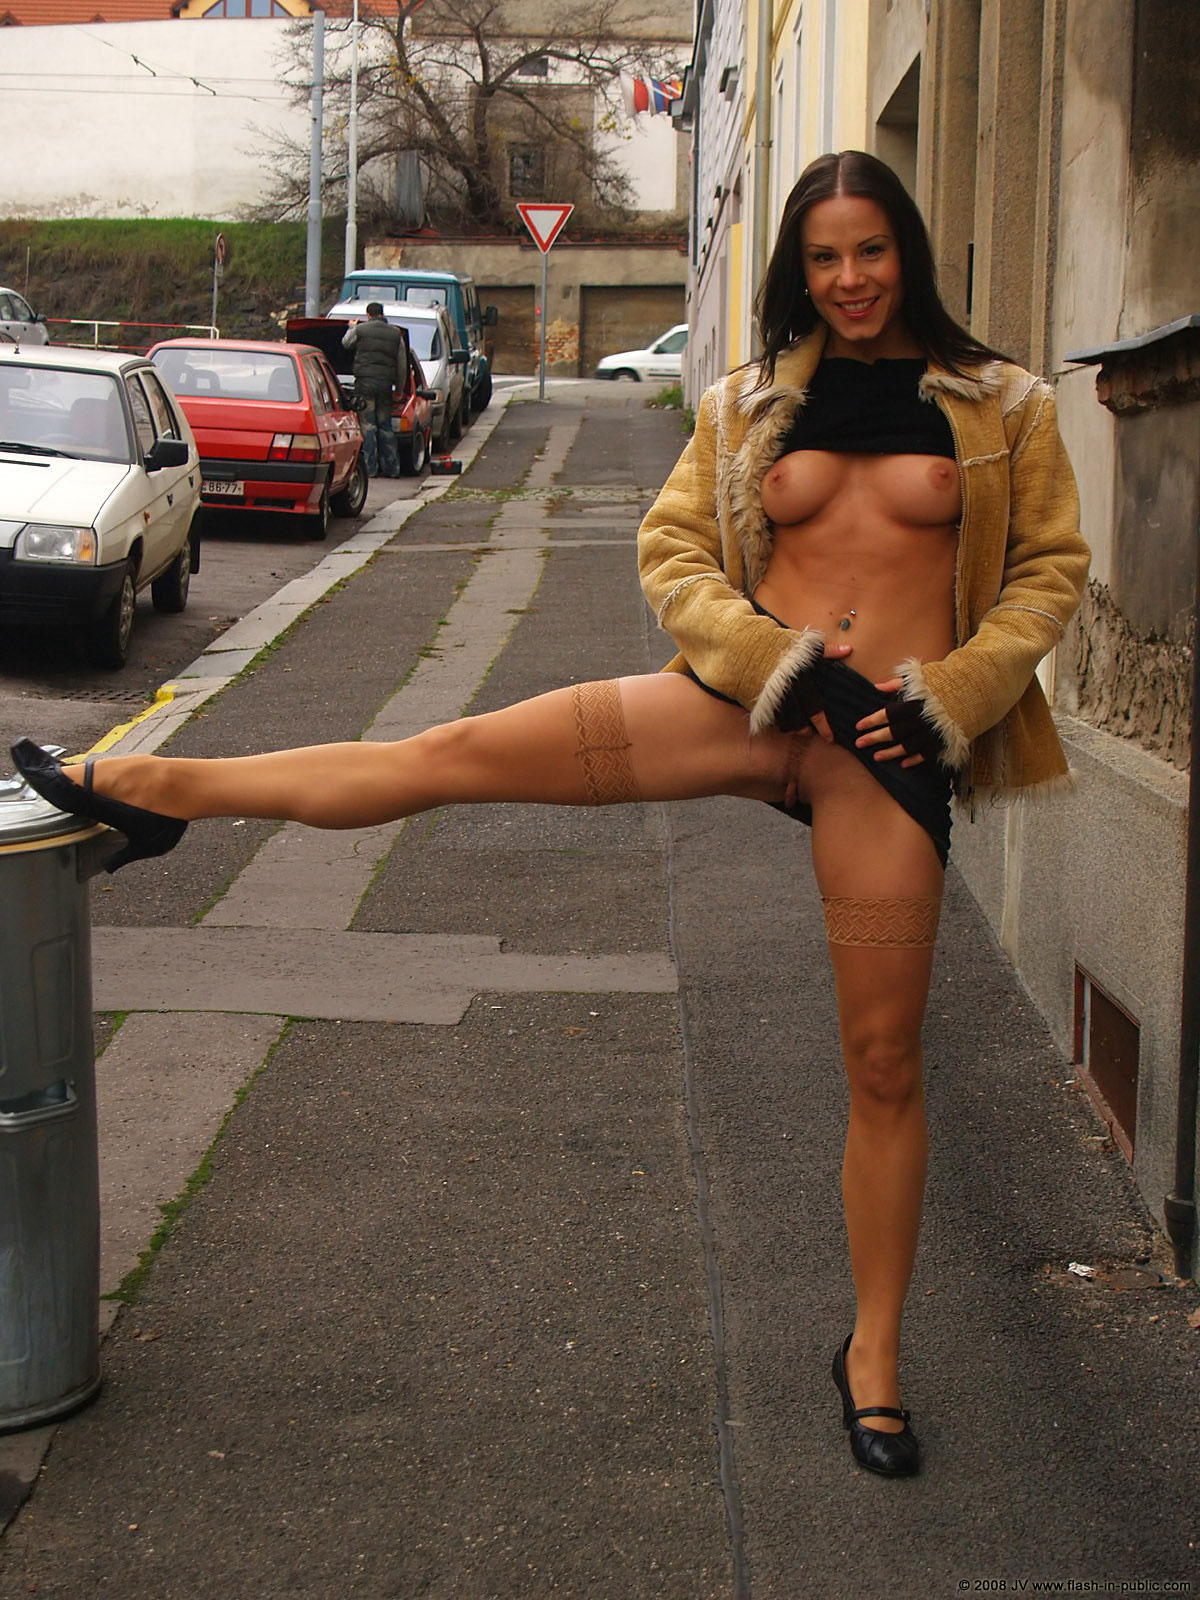 alexandra-g-bottomless-stockings-flash-in-public-30